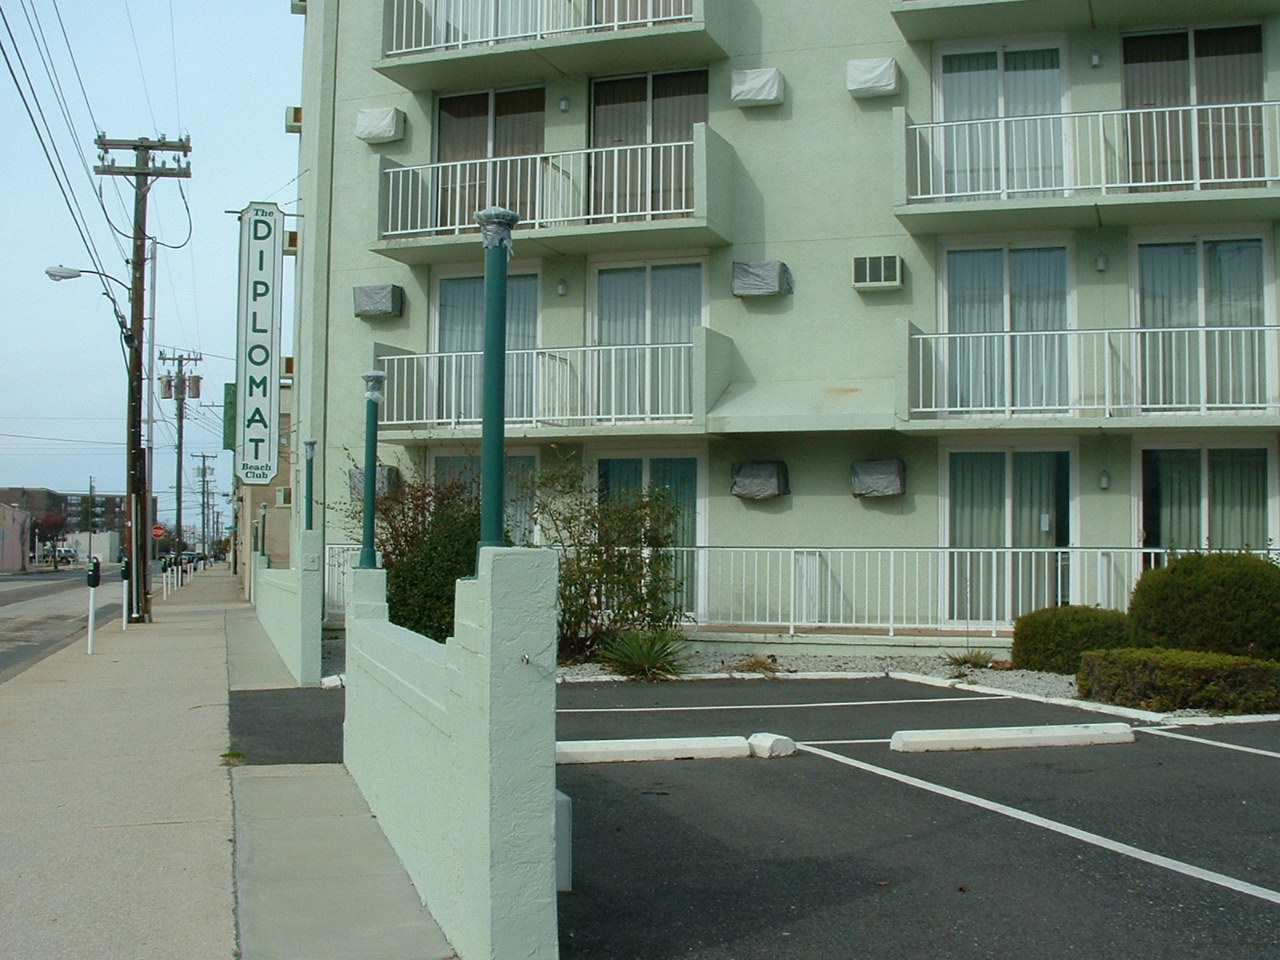 225, Unit 102 Fir Wildwood, Wildwood